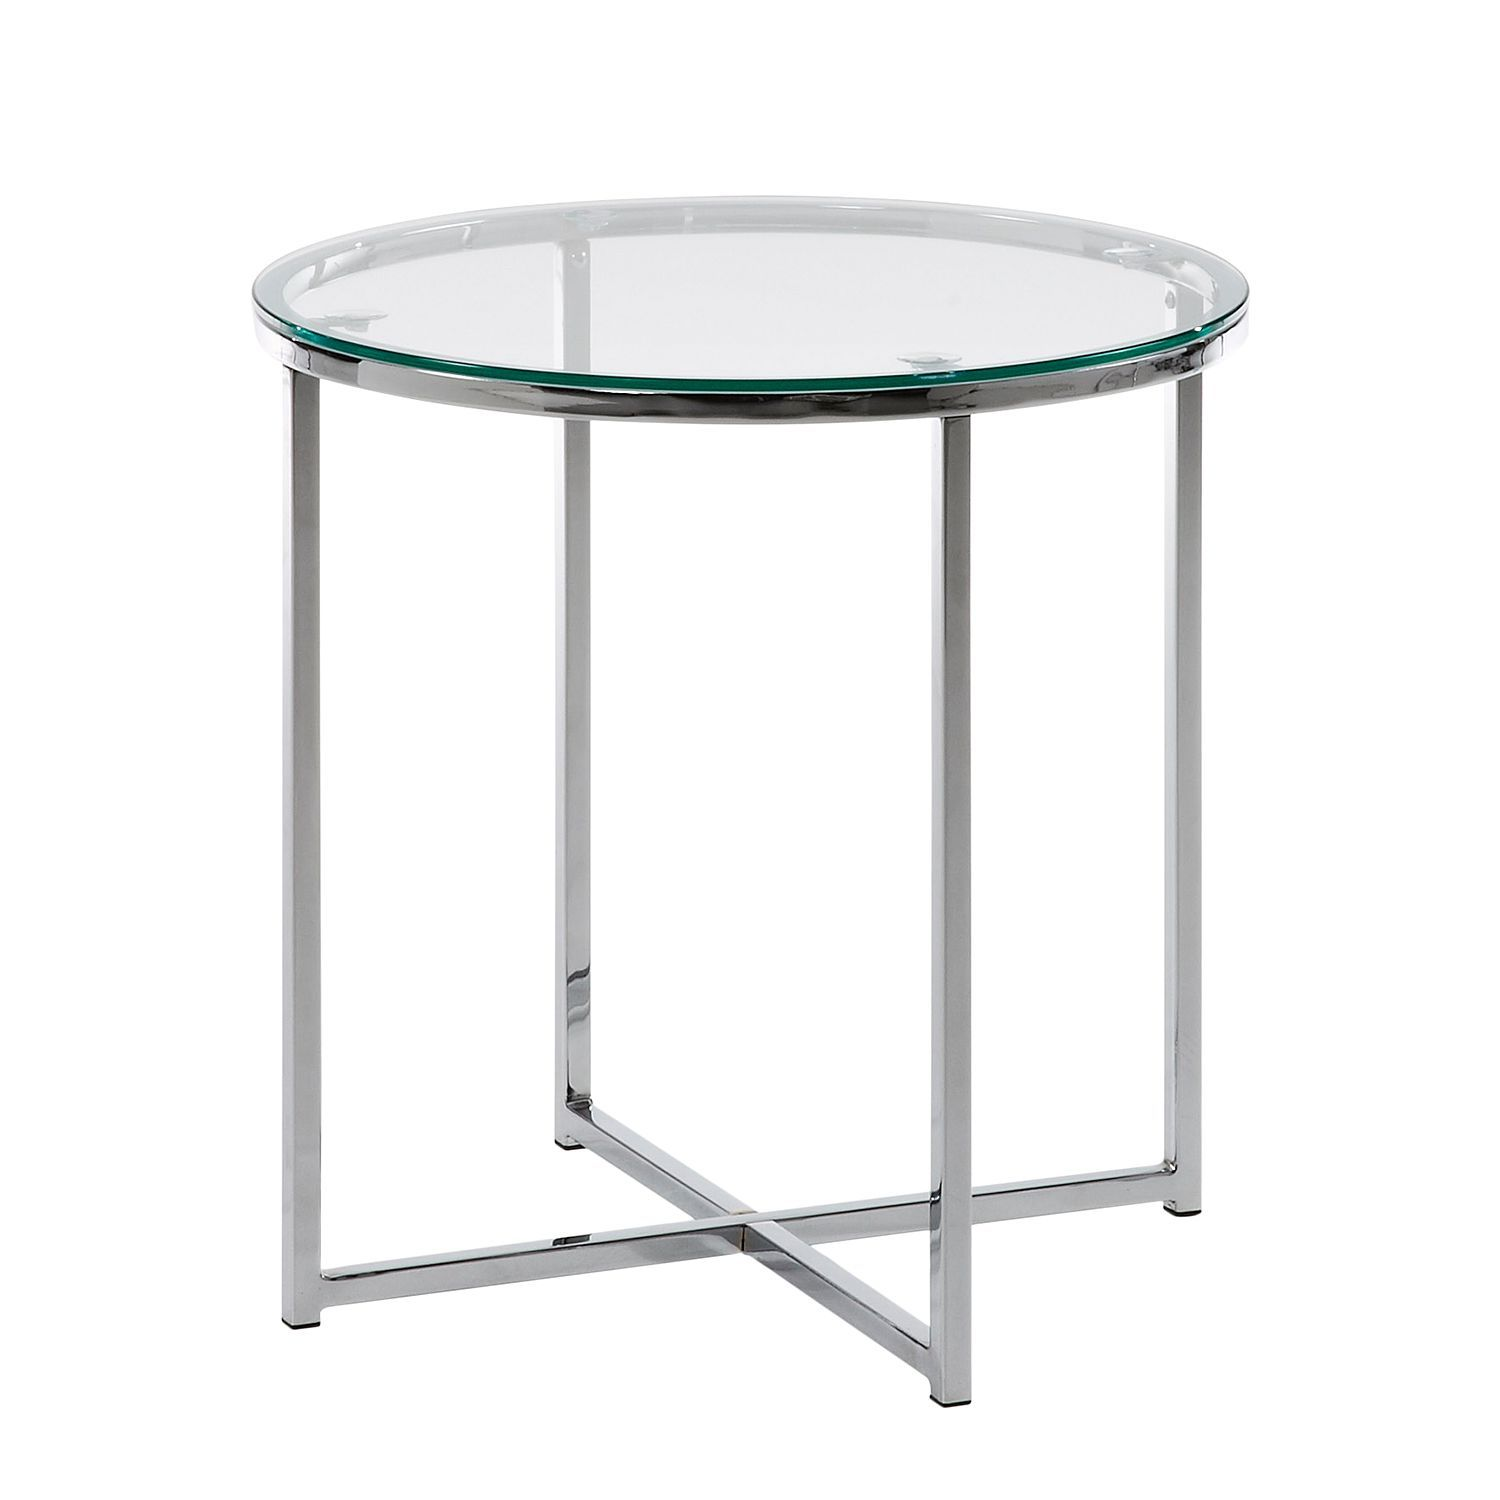 Couchtische Beistelltische Porta Online Shop Pin By Ladendirekt On Tische Table Furniture Table End Tables